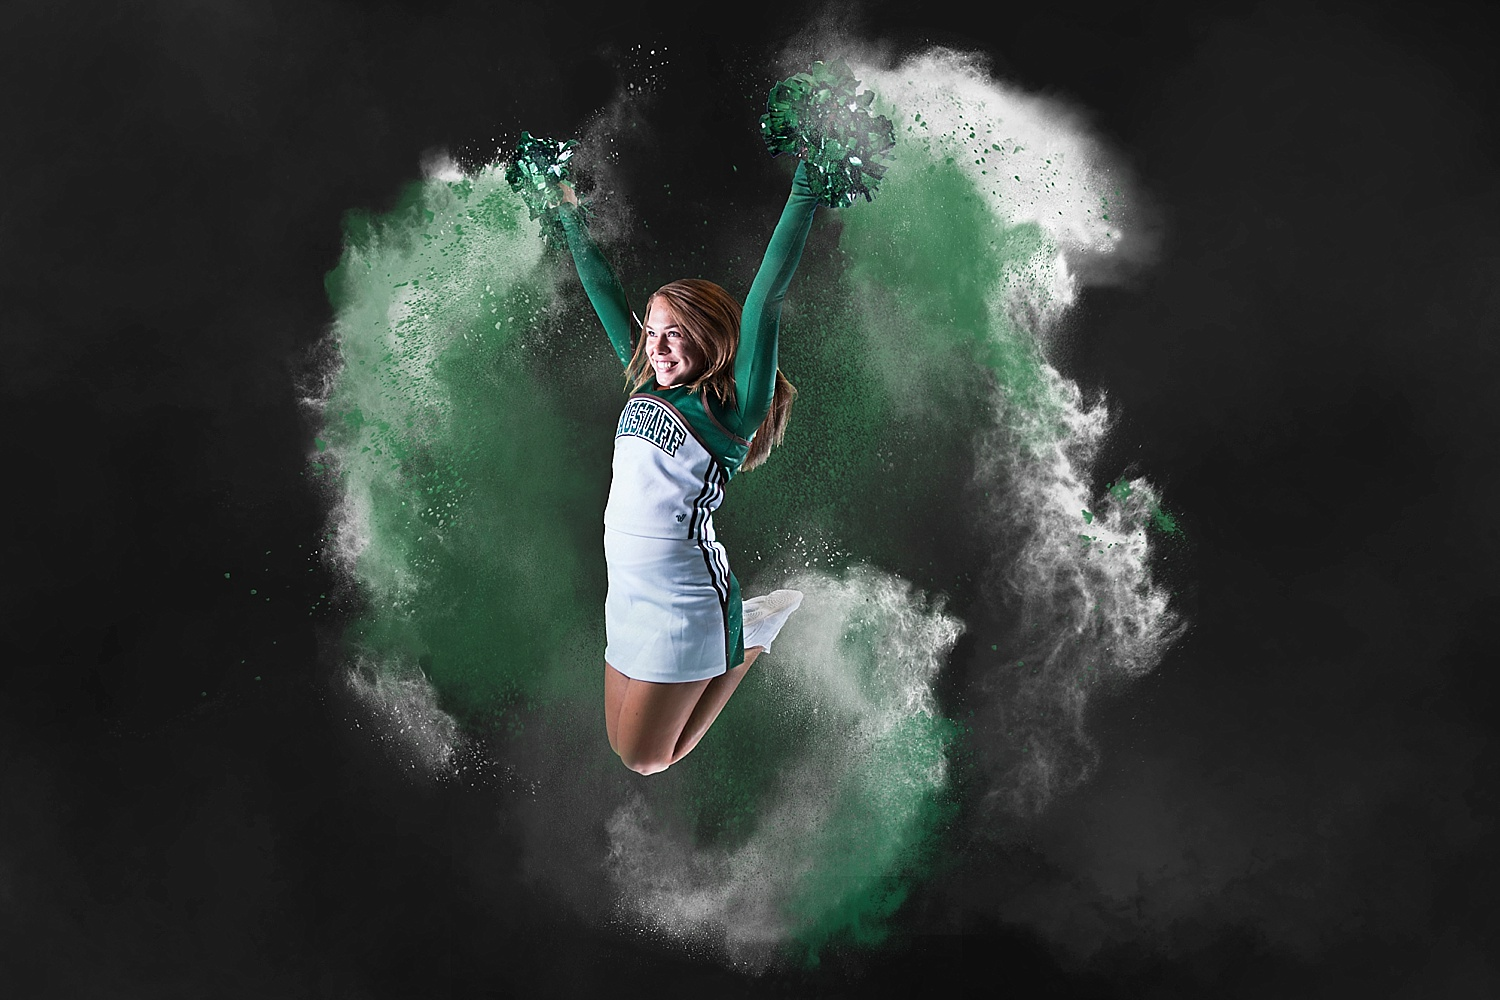 001-angela-flagstaff-cheerleader-sports-photo-©2017ther2studio